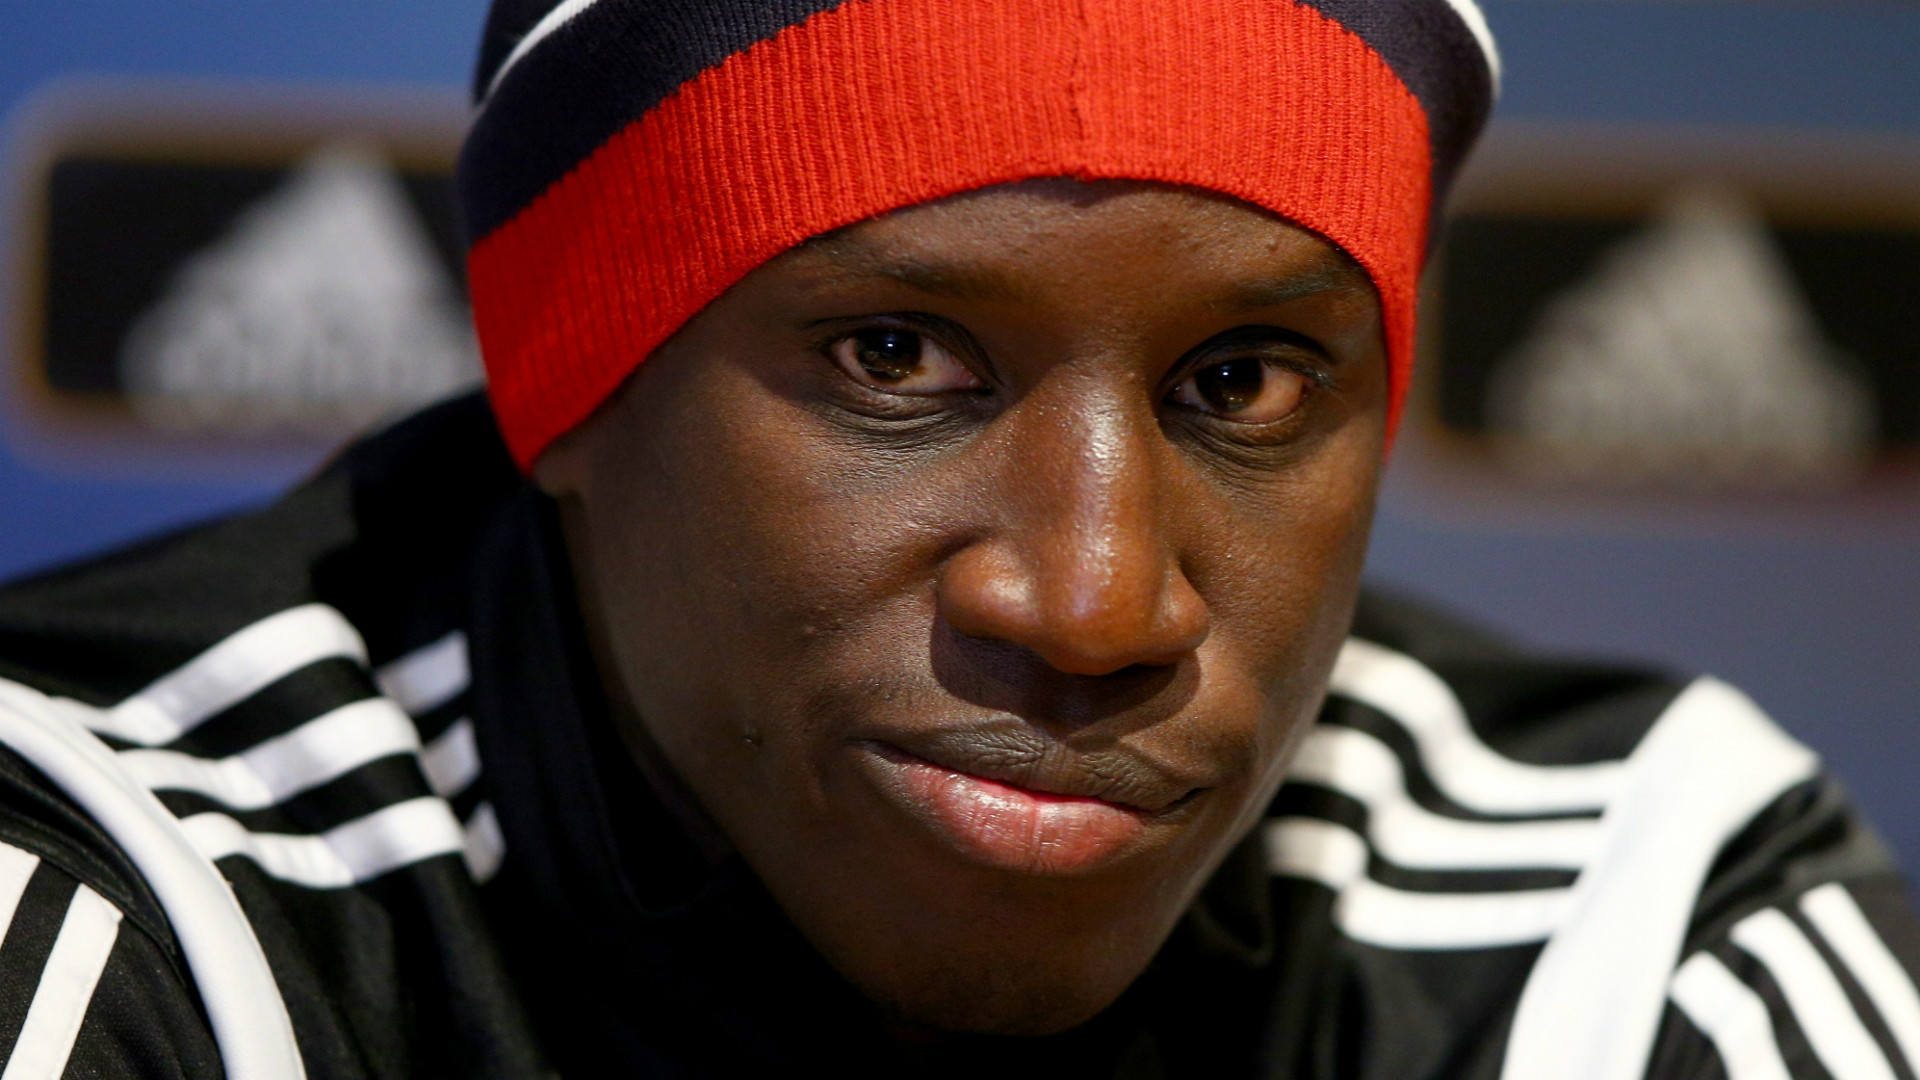 Demba Ba suffers horrific 'career-ending' leg break during match — GRAPHIC FOOTAGE